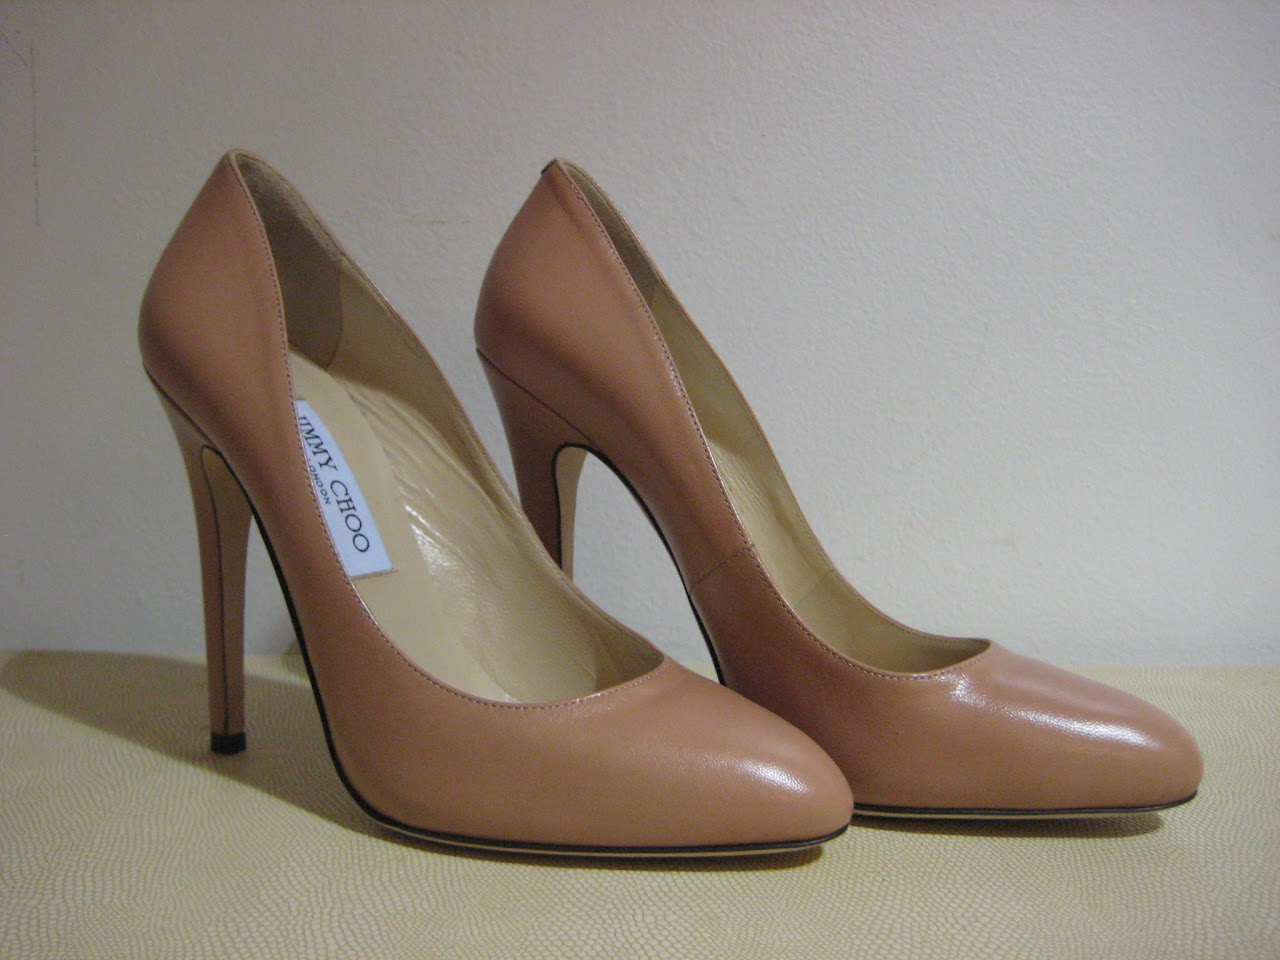 Jimmy Choo Peach Pumps